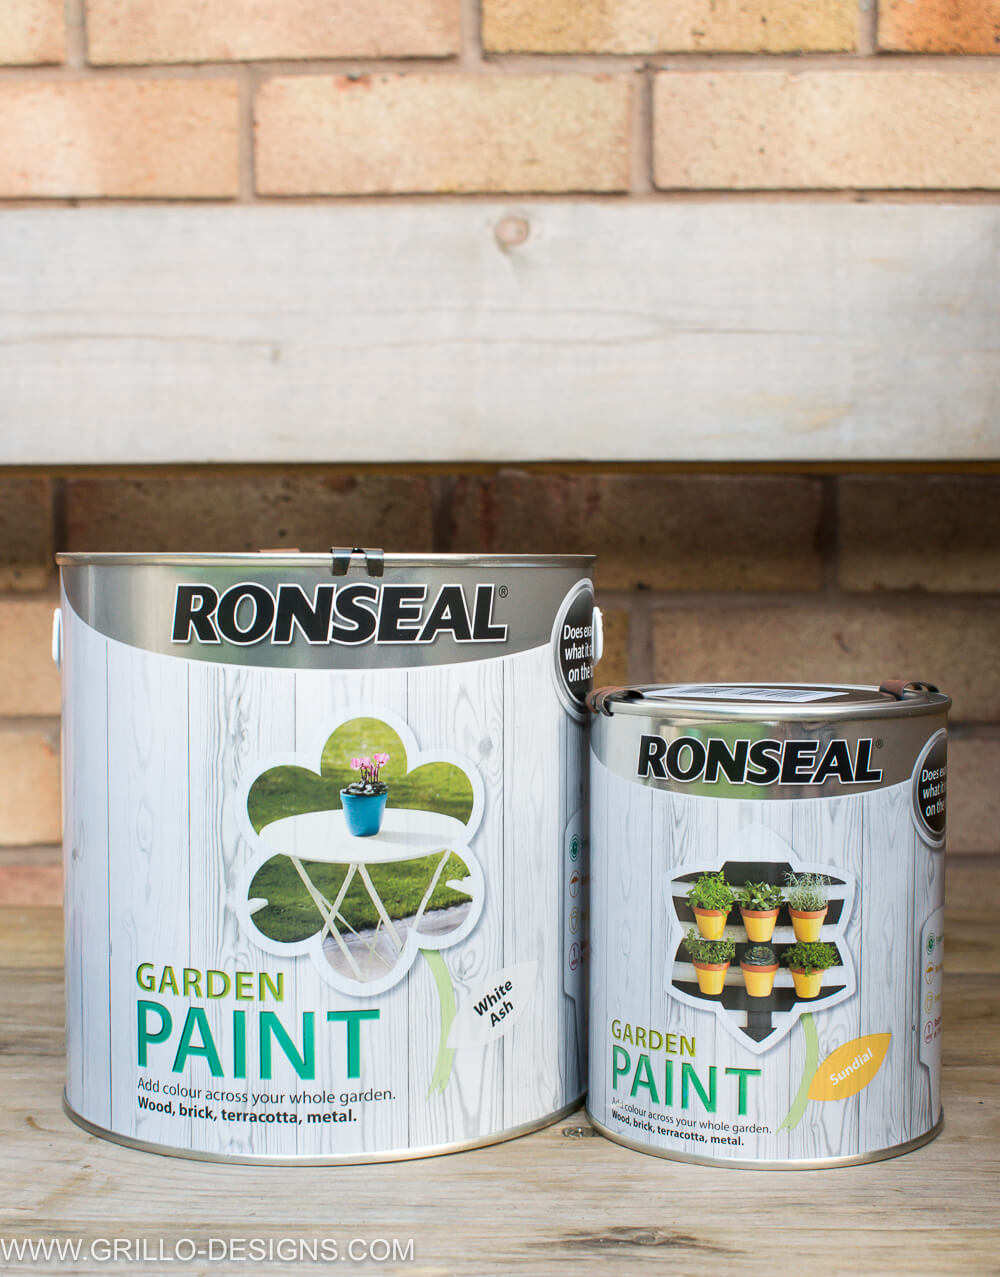 Two cans of outdoor ronseal color presented on a wooden surface